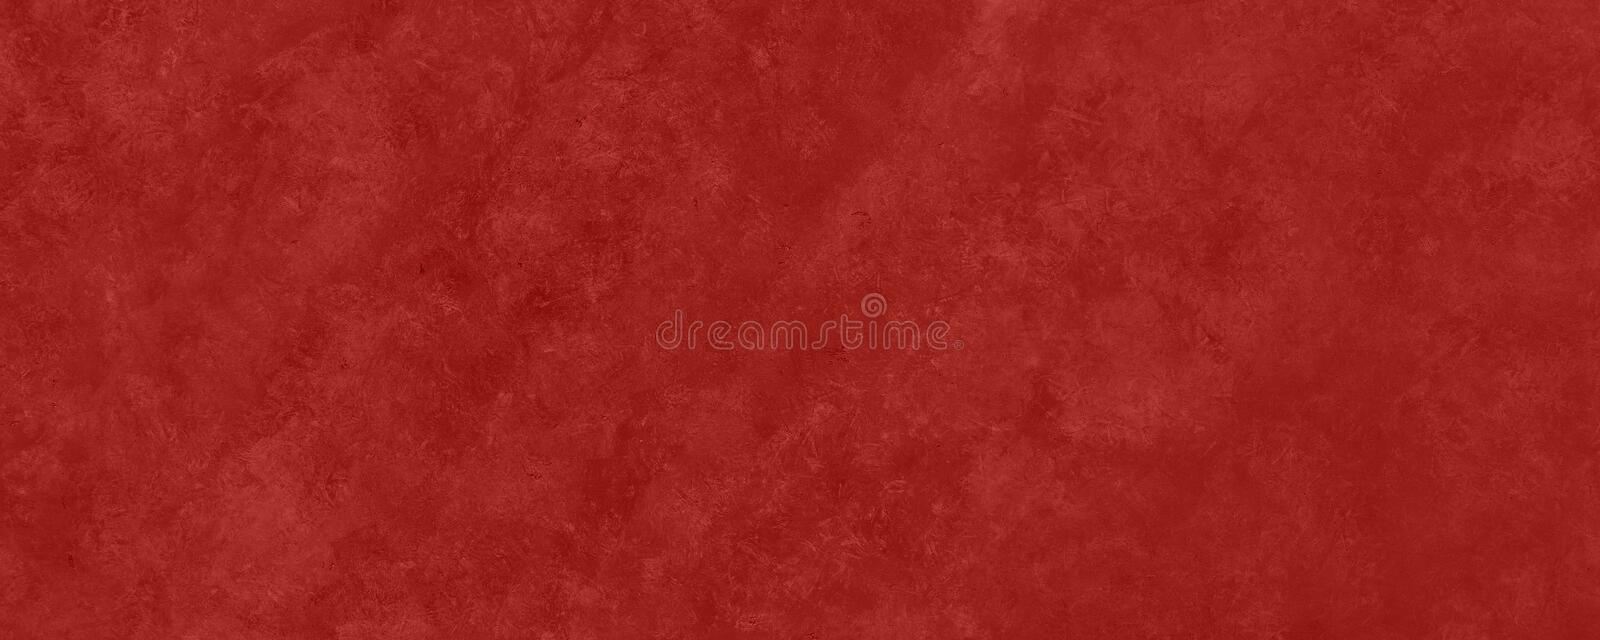 23 889 Maroon Background Photos Free Royalty Free Stock Photos From Dreamstime 1680 x 1050 jpeg 150 кб. dreamstime com